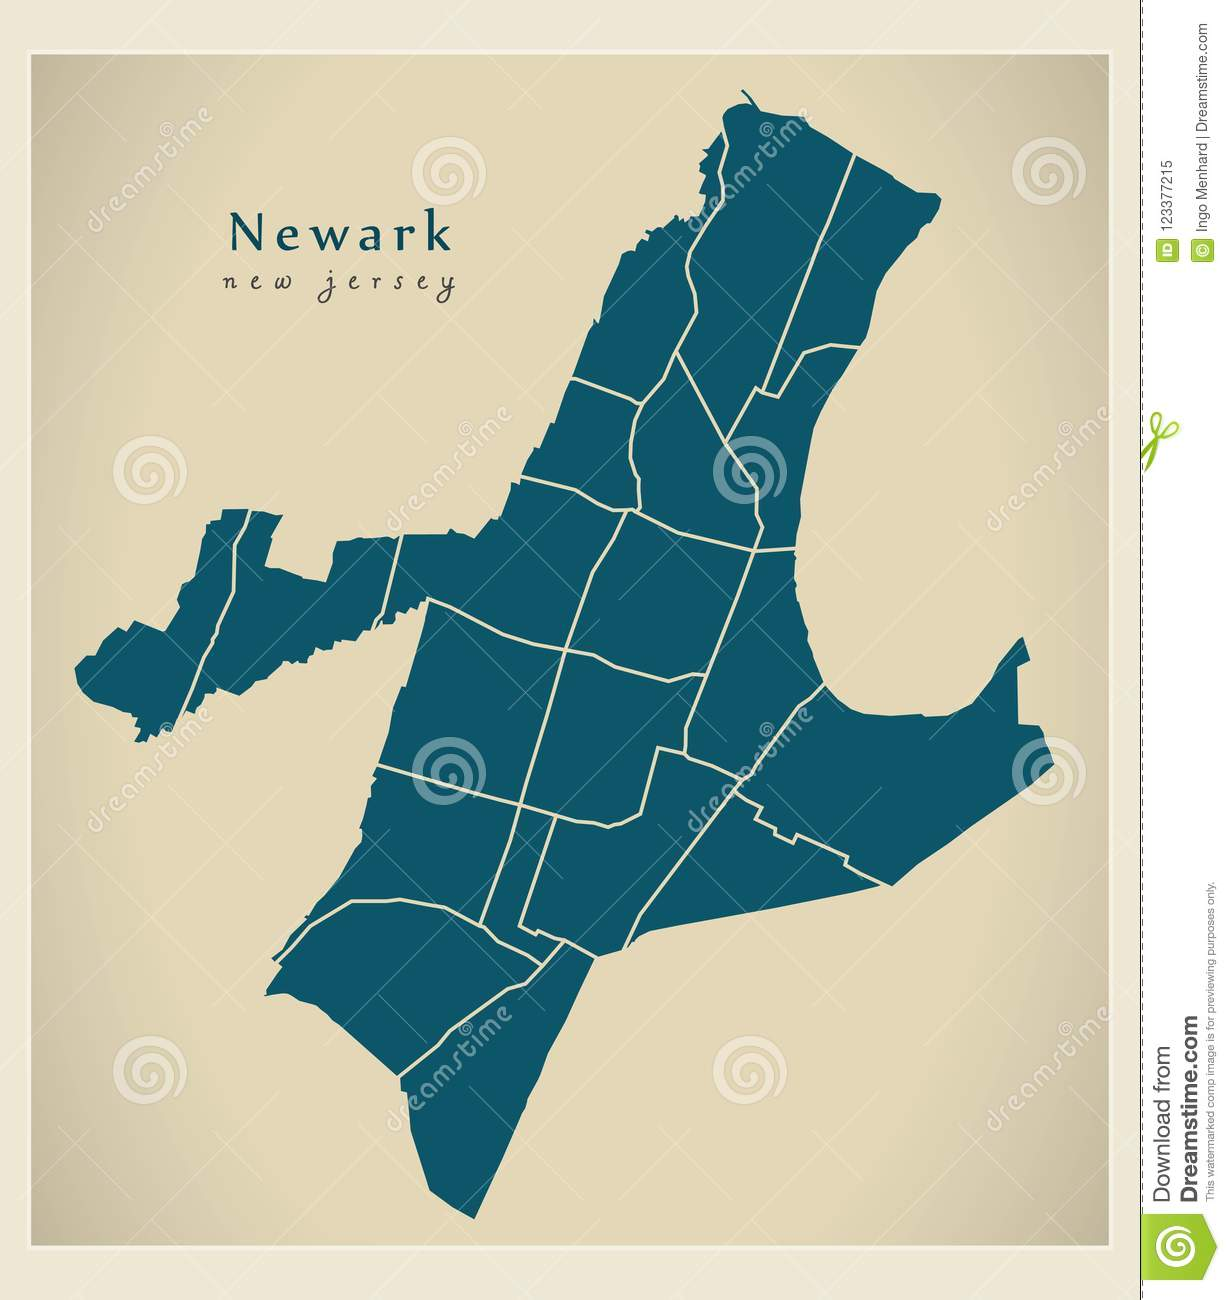 modern city map newark new jersey city of the usa with neighbo